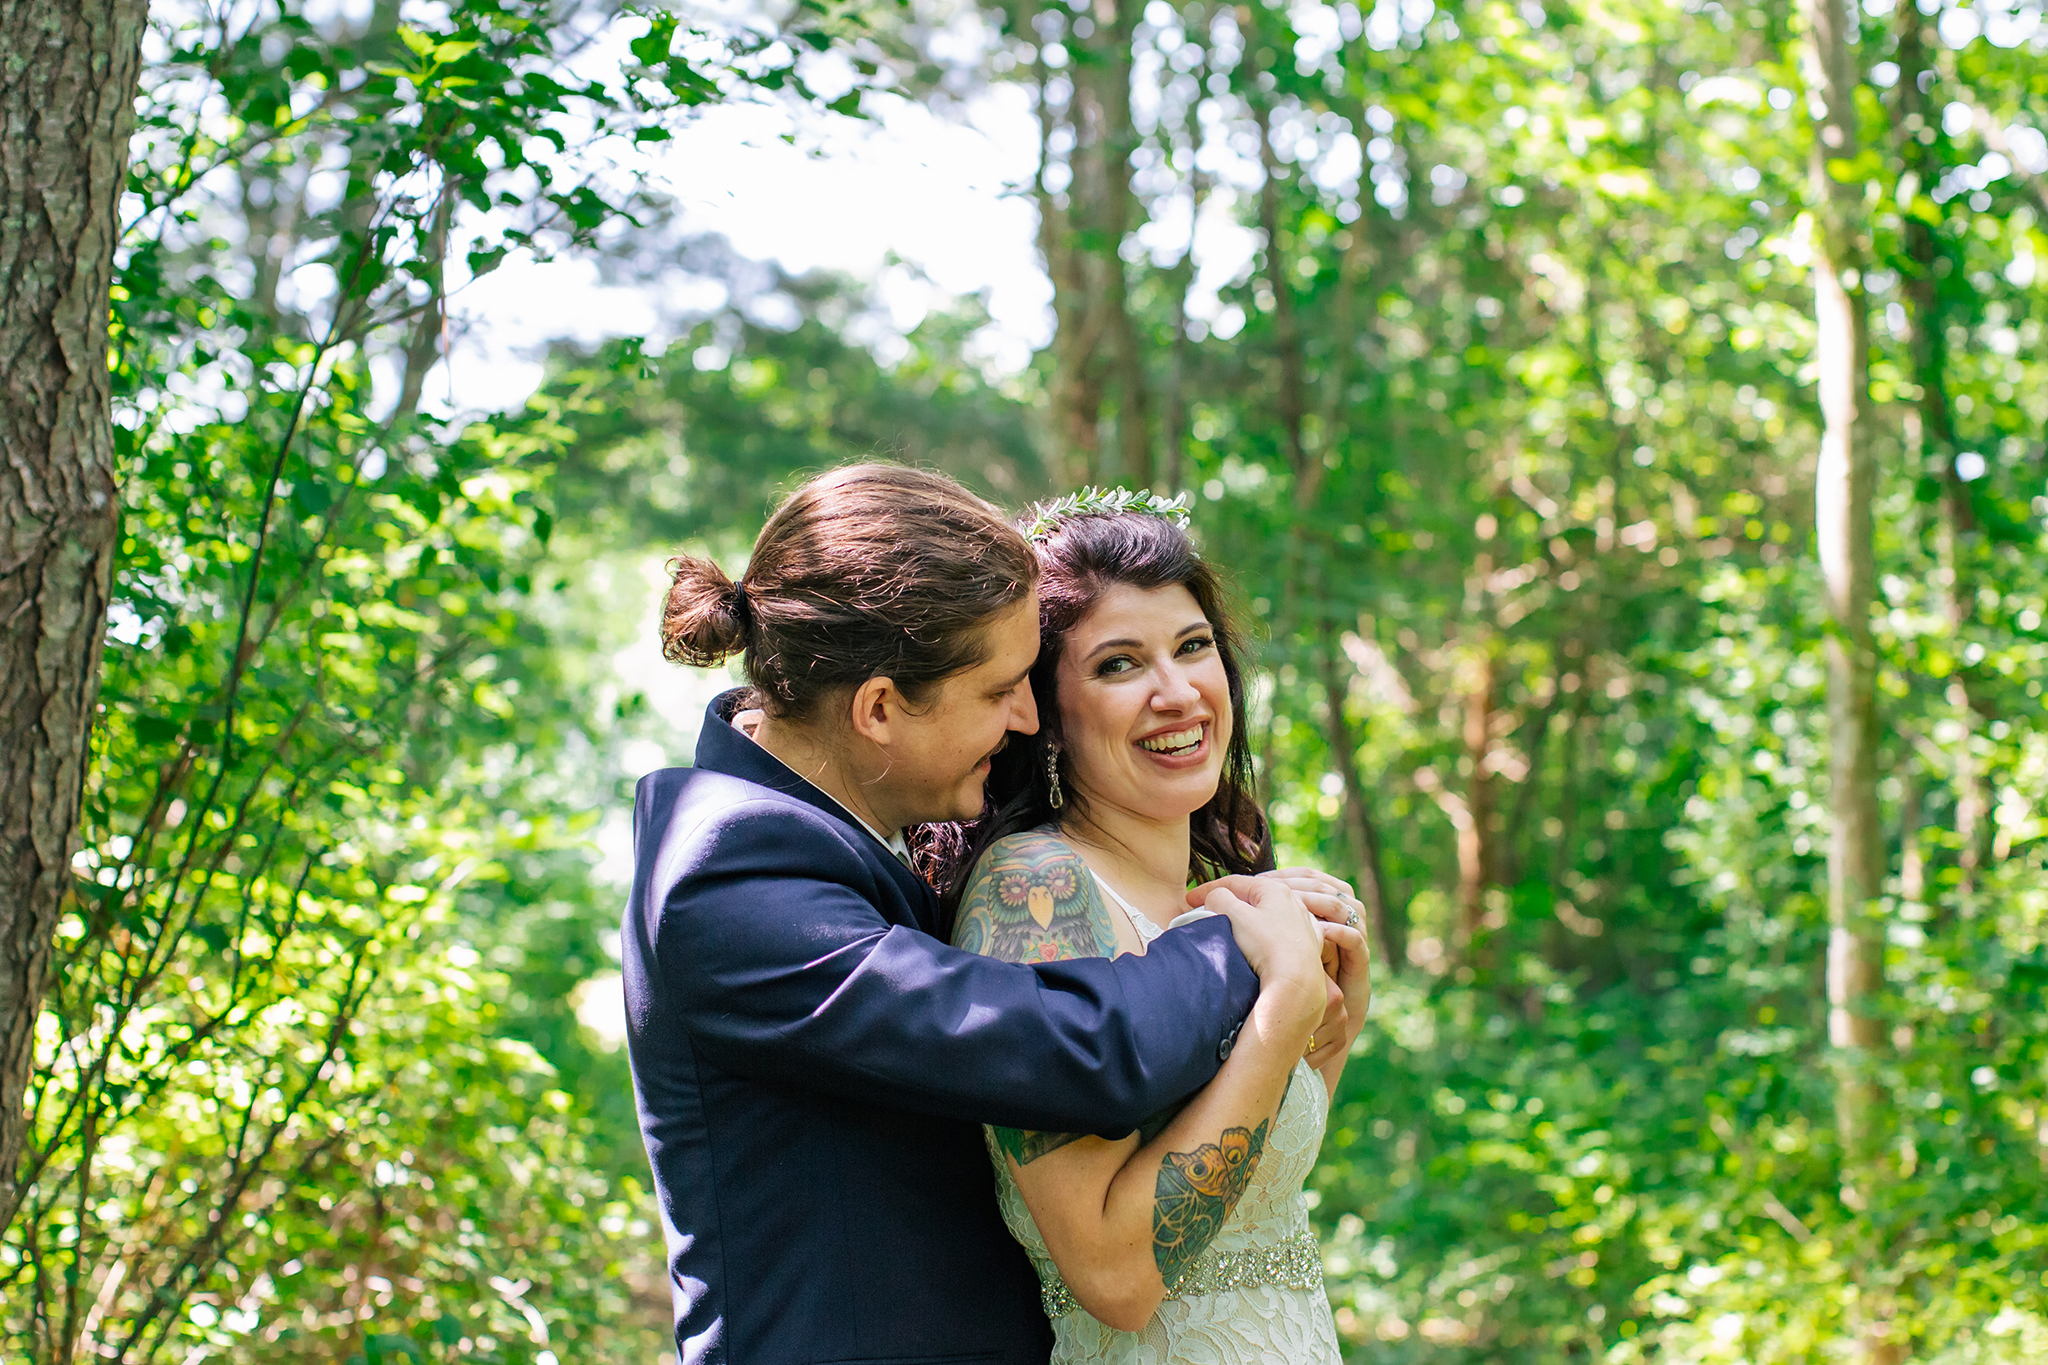 photography by mallory - lakeville wedding photographer.jpg